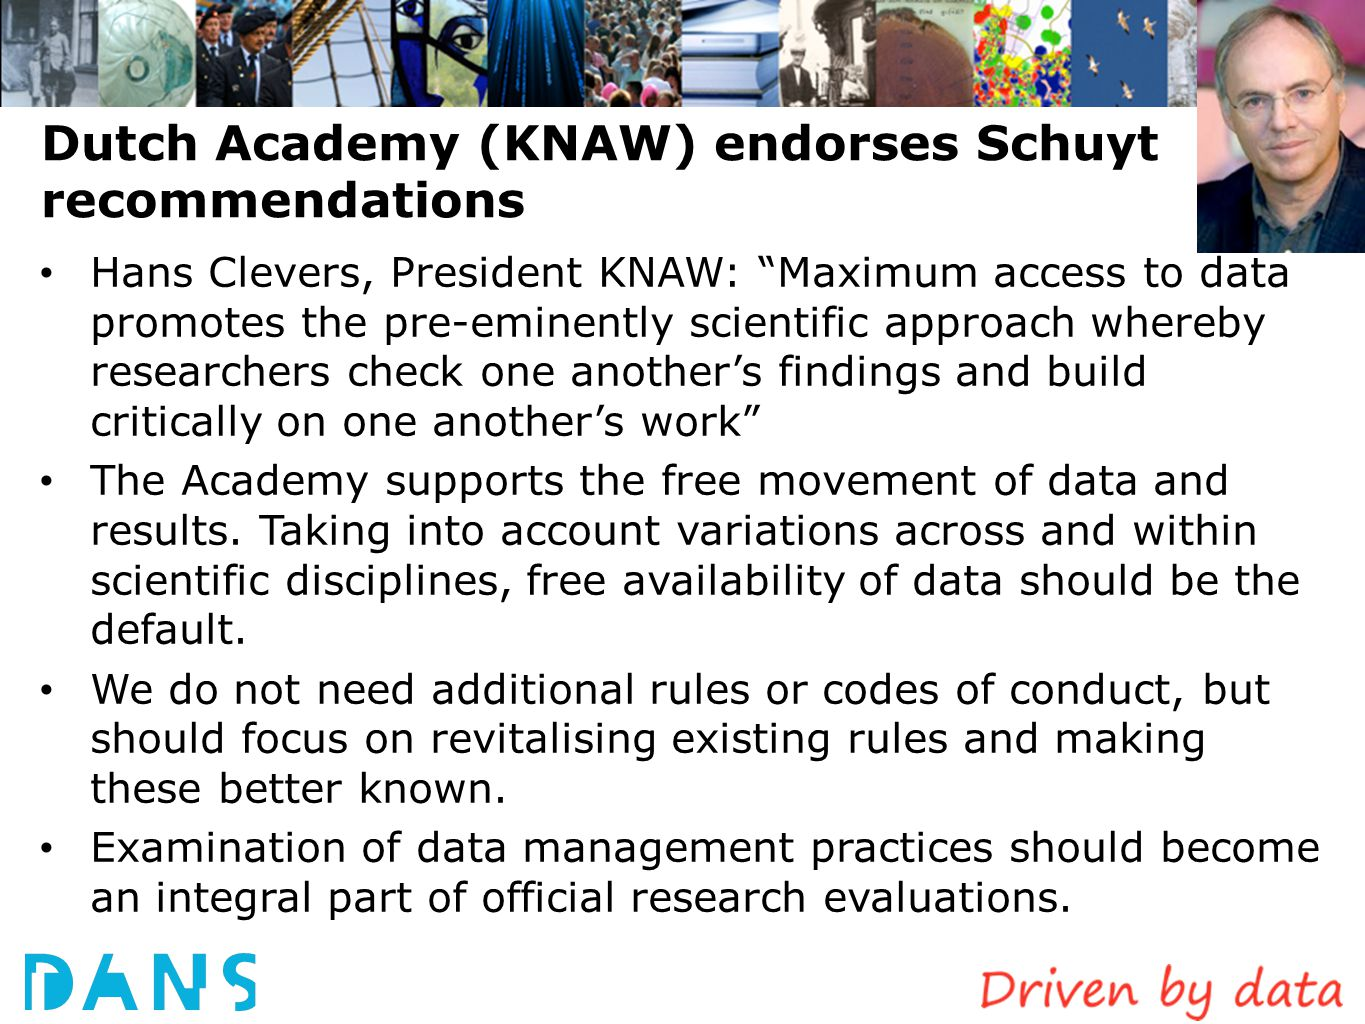 Dutch Academy (KNAW) endorses Schuyt recommendations